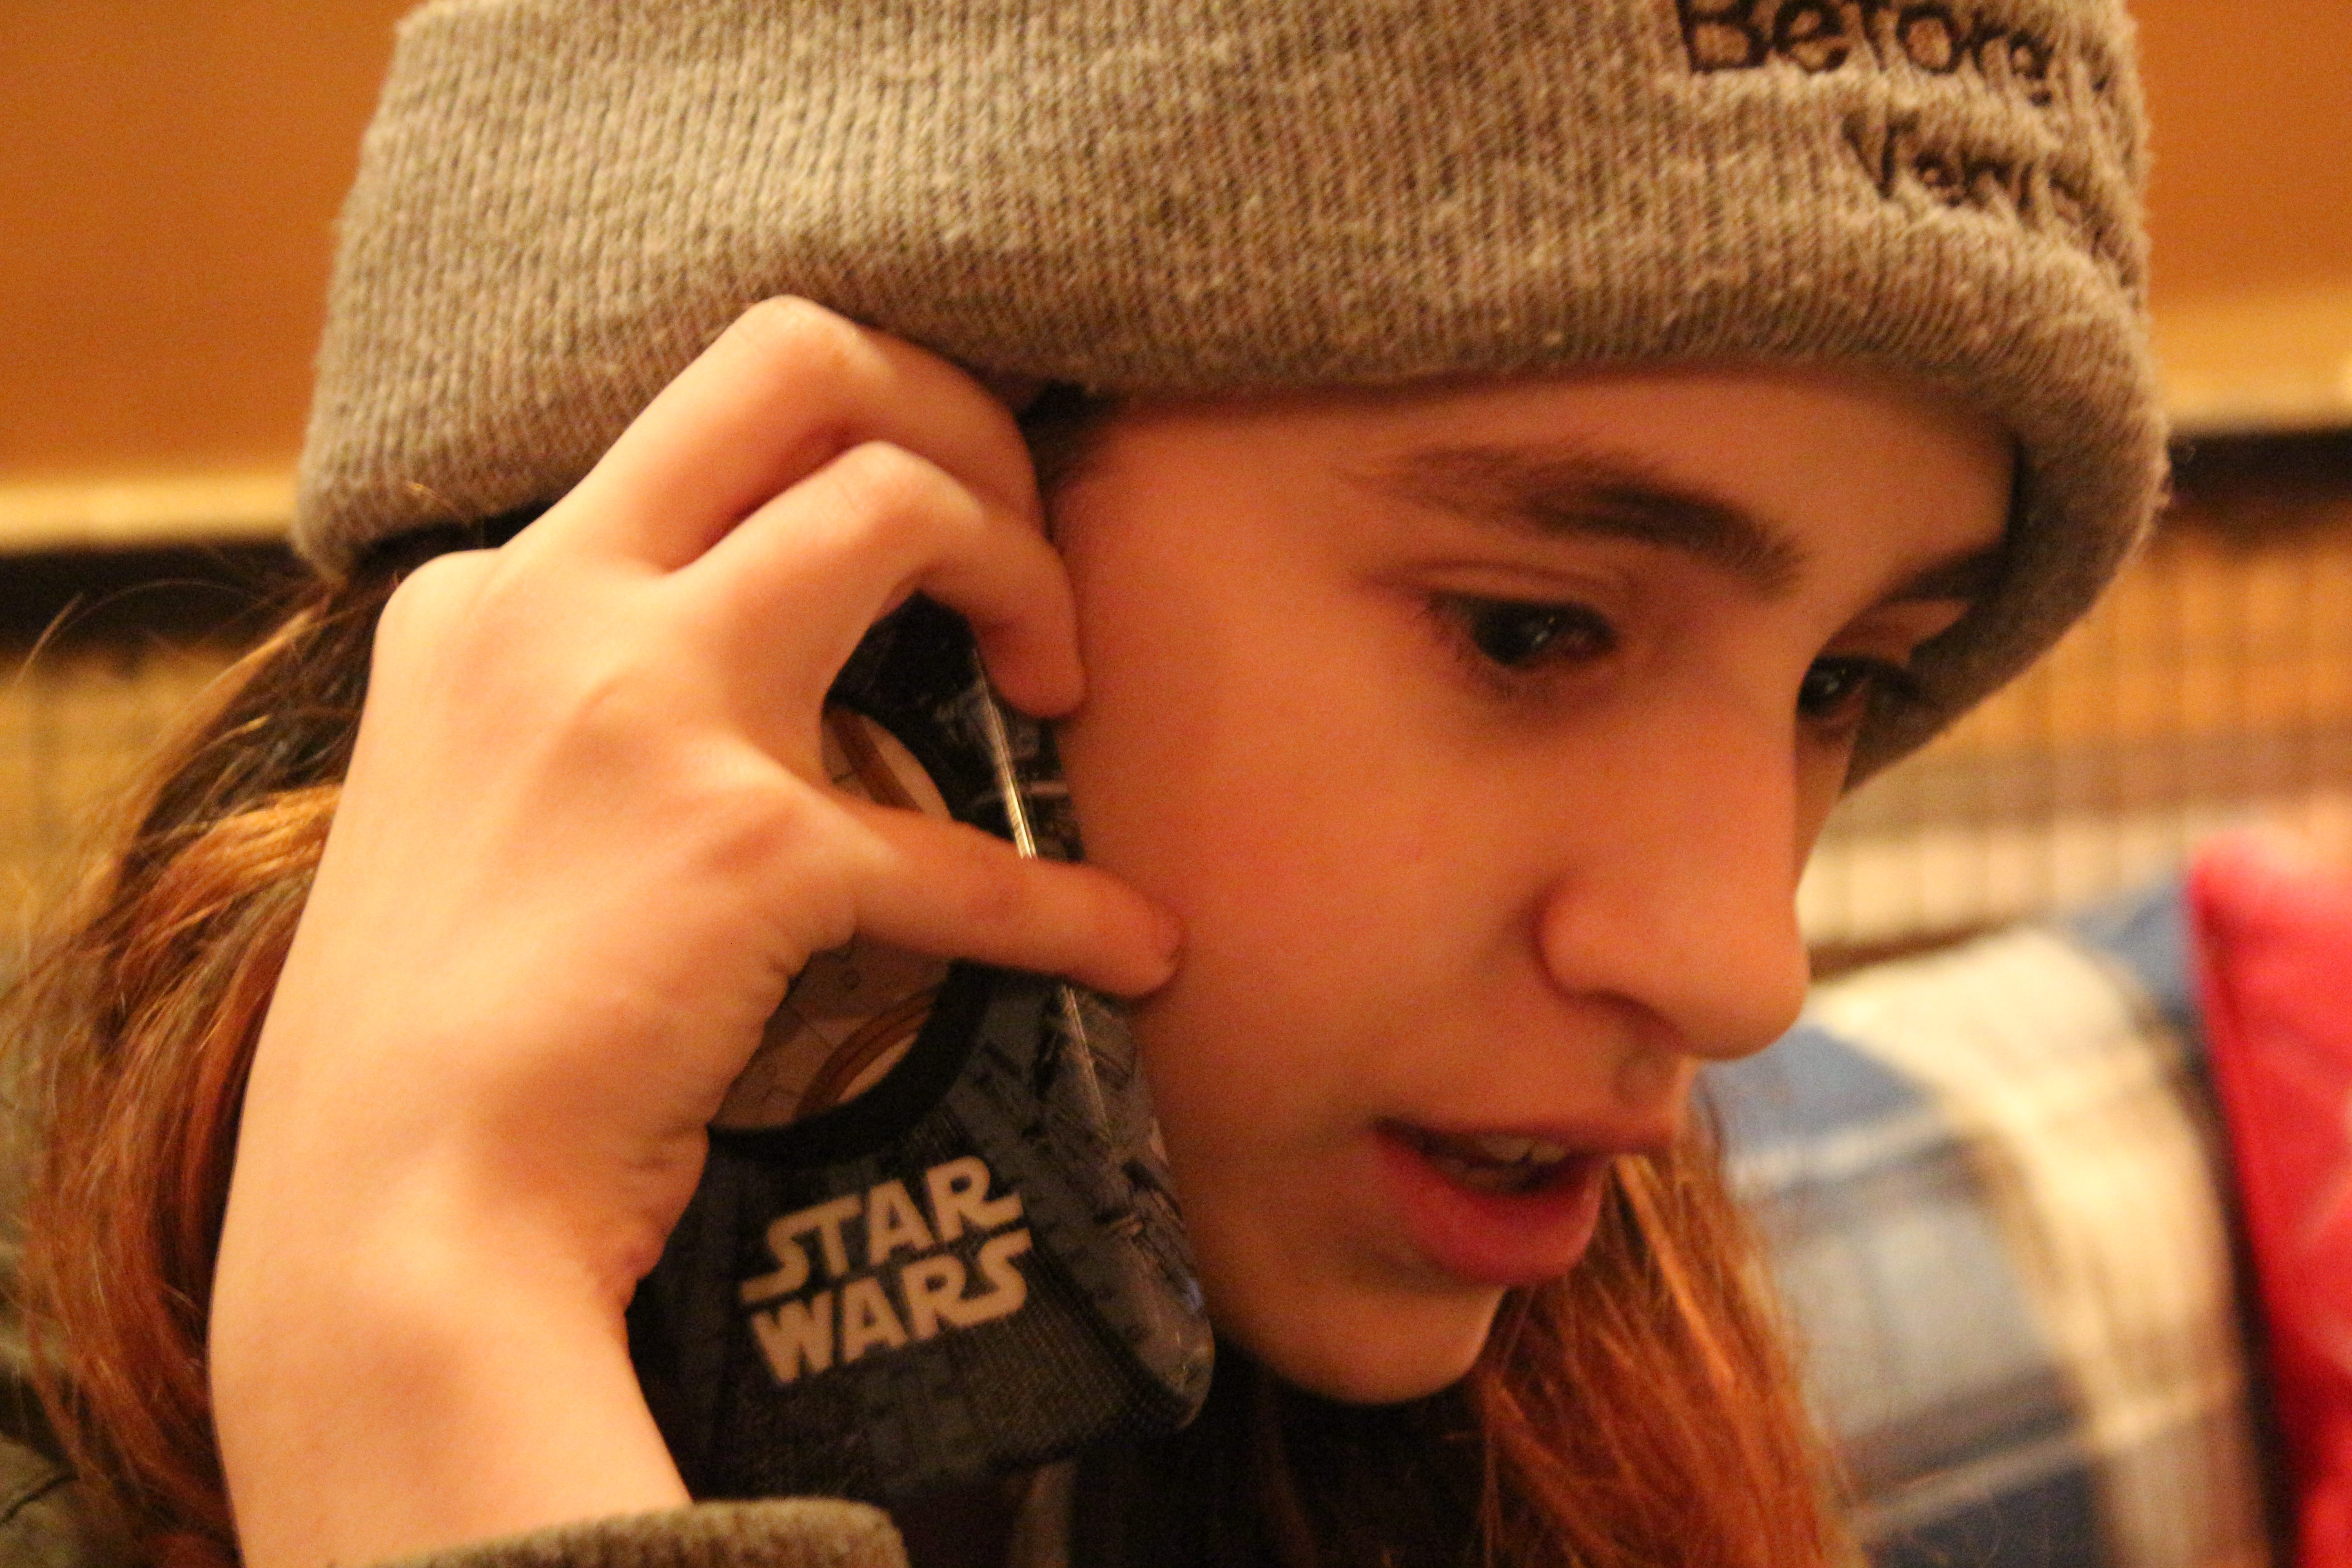 Maeve Press star wars phone